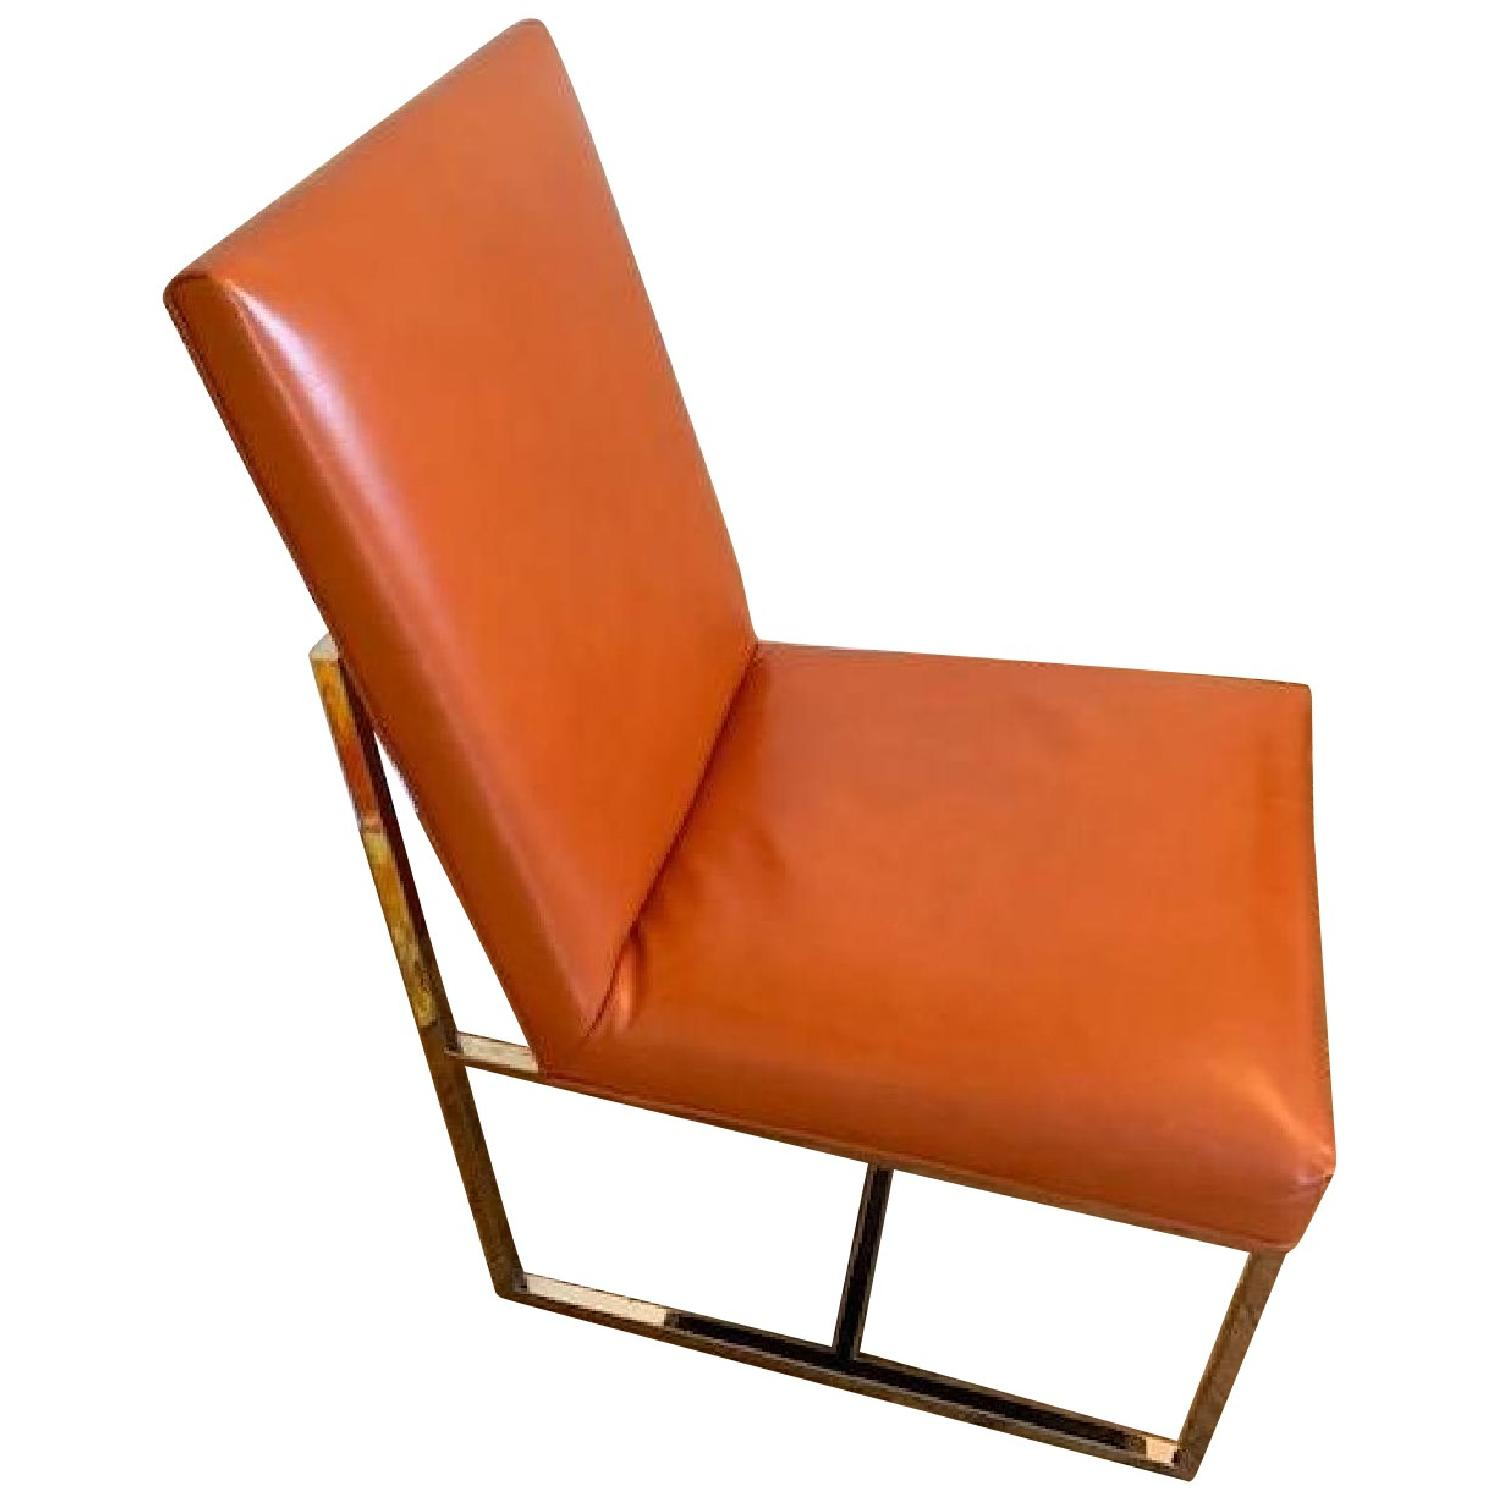 Mitchell Gold + Bob Williams Gage Leather Dining Chairs - image-0